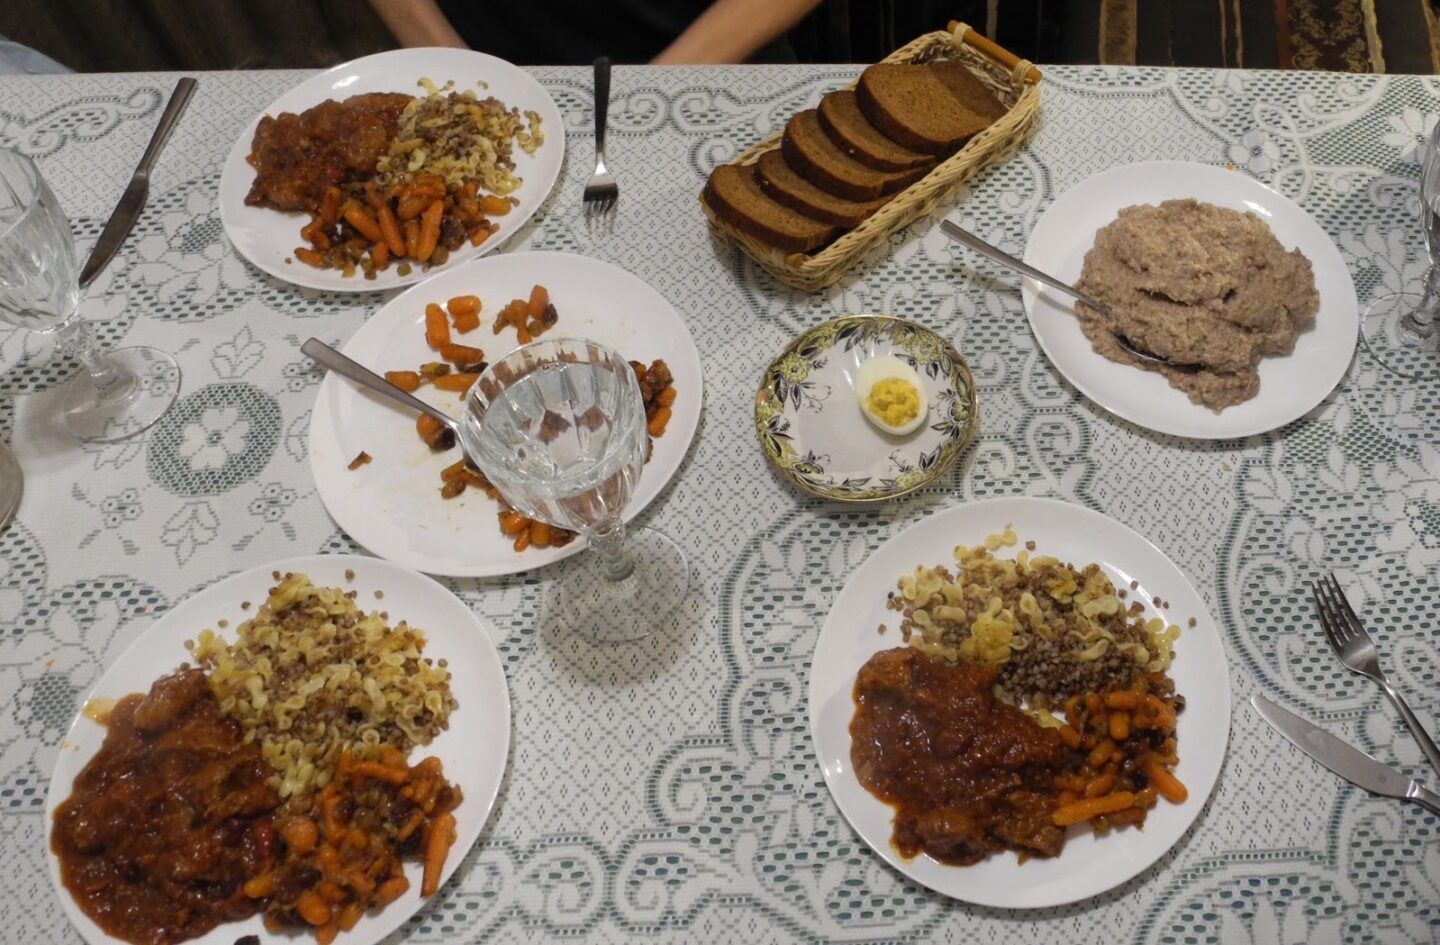 <p>The remains of a&nbsp;lunch at Café Jerusalem in Lviv. All pho­tos cour­tesy Emma Claire Foley and Guy&nbsp;Tabachnik.</p>